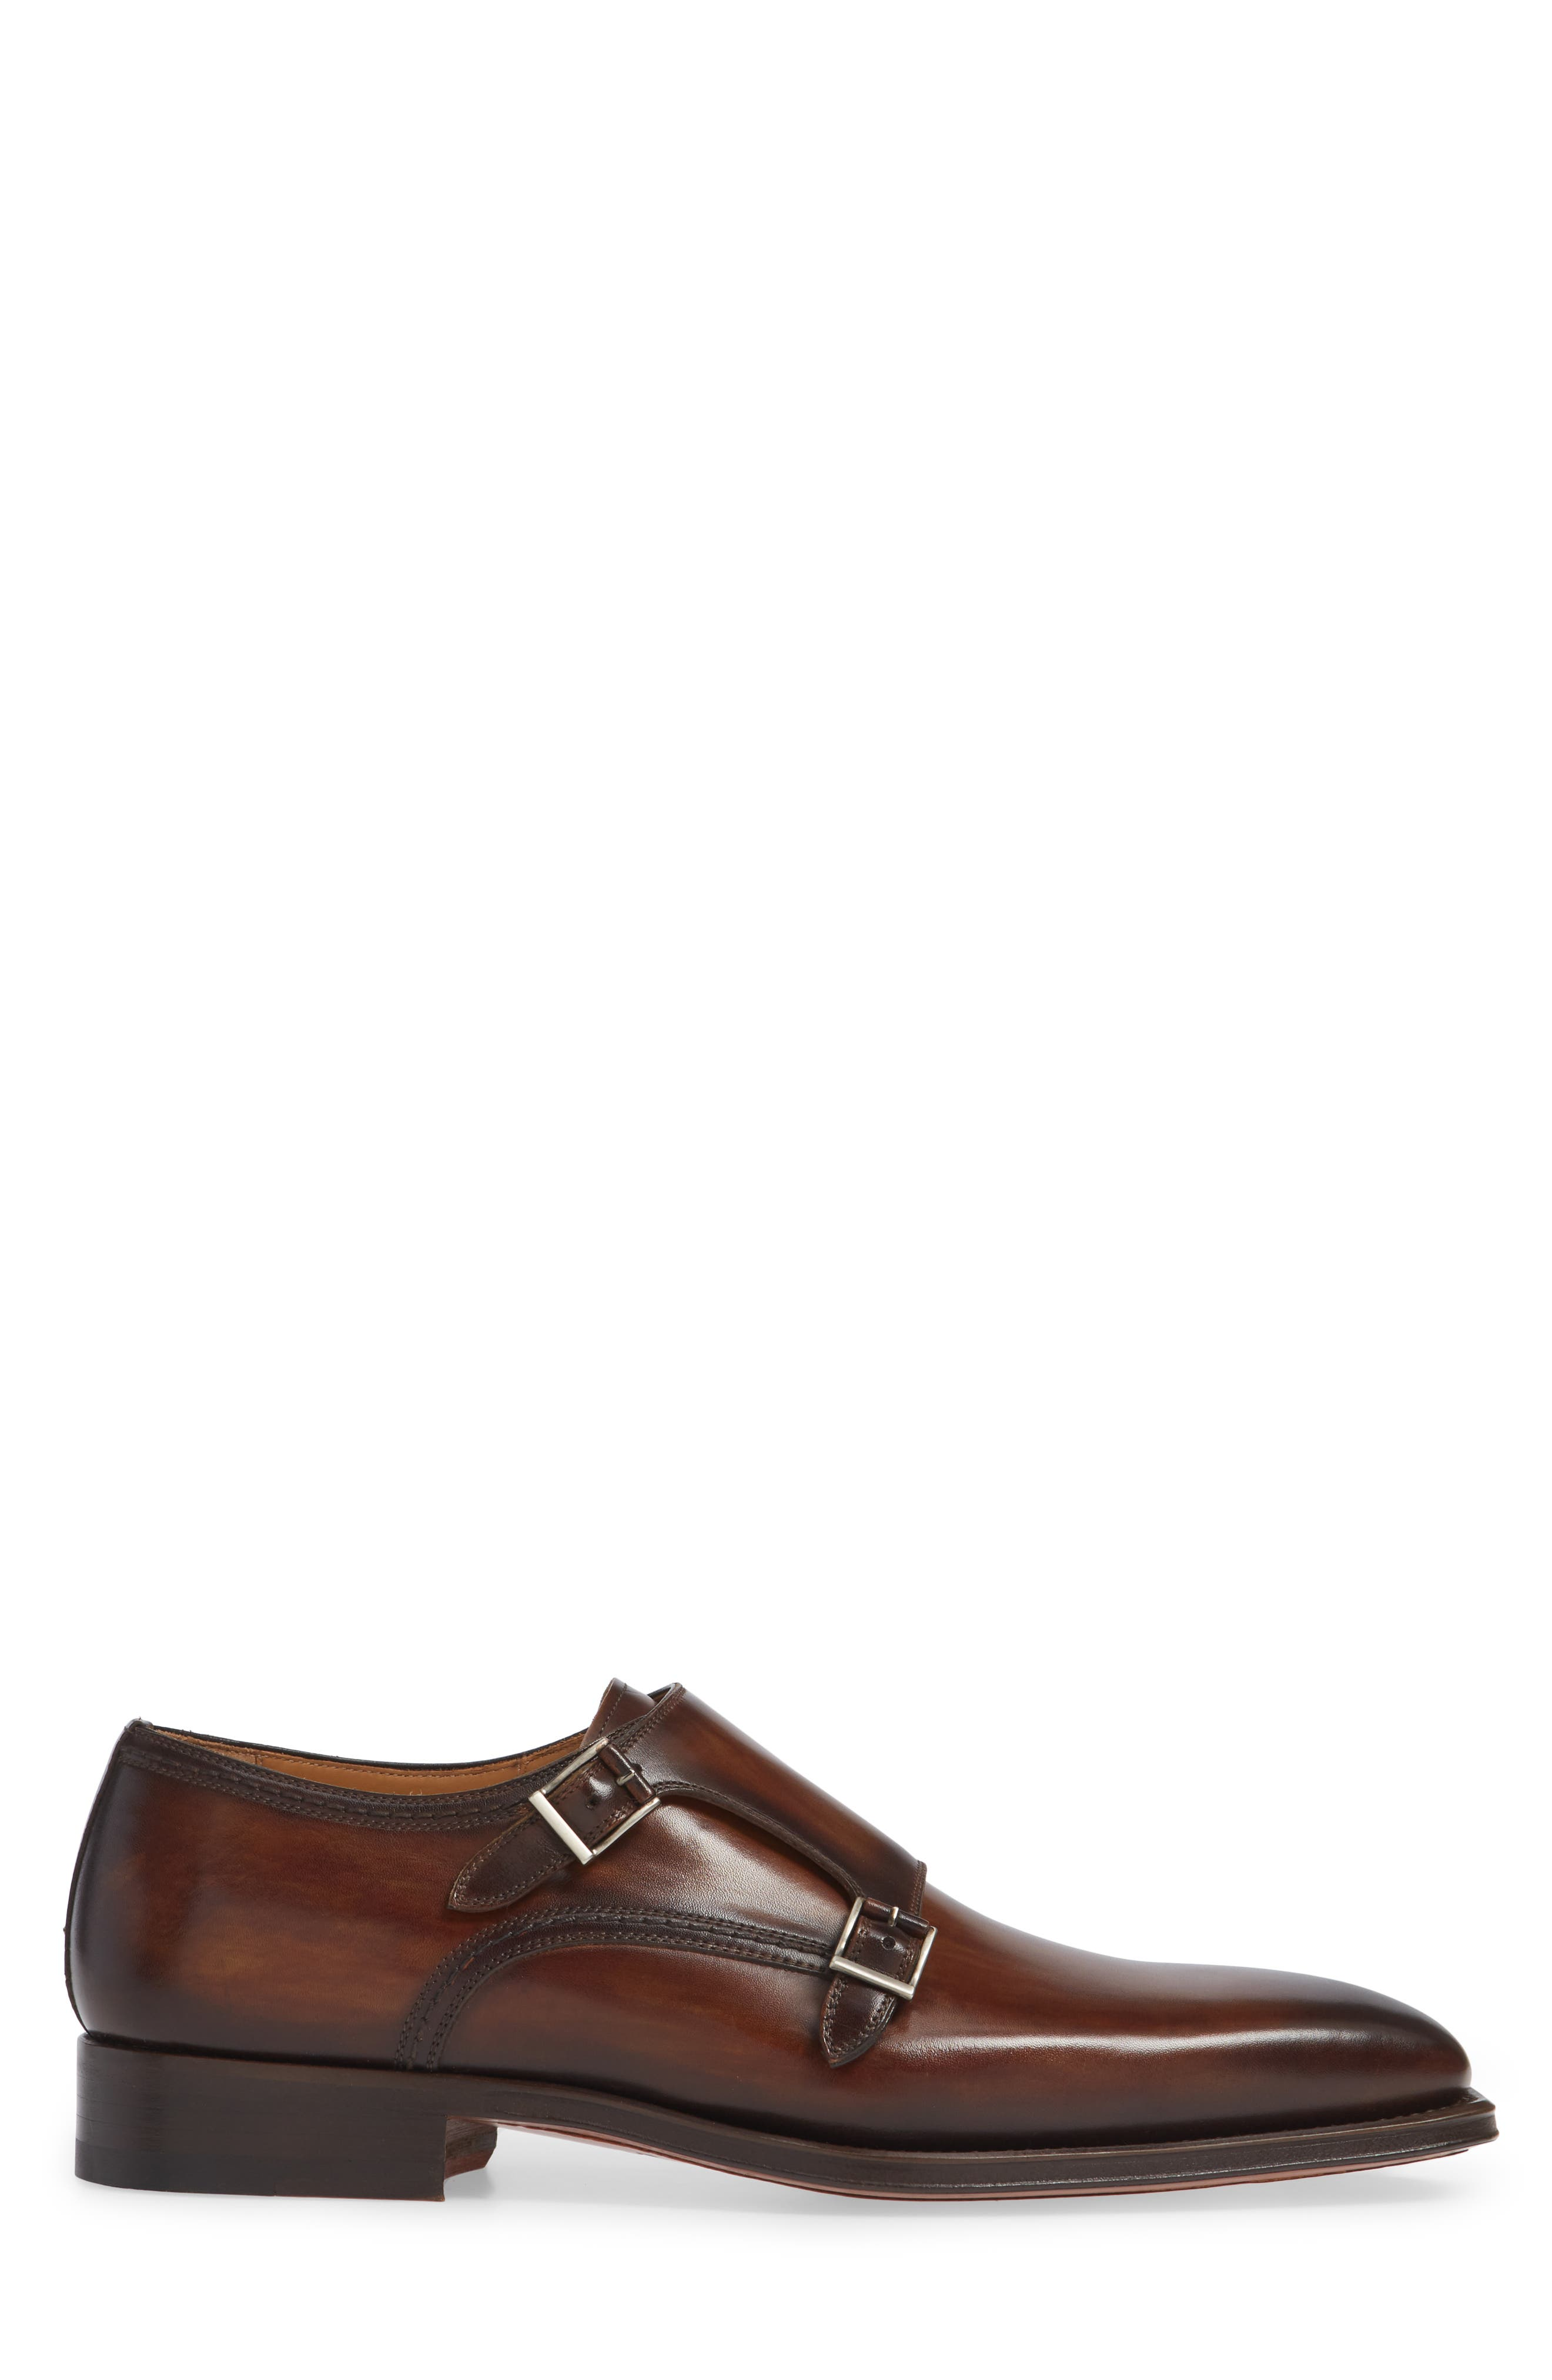 ,                             Landon Double Strap Monk Shoe,                             Alternate thumbnail 18, color,                             240